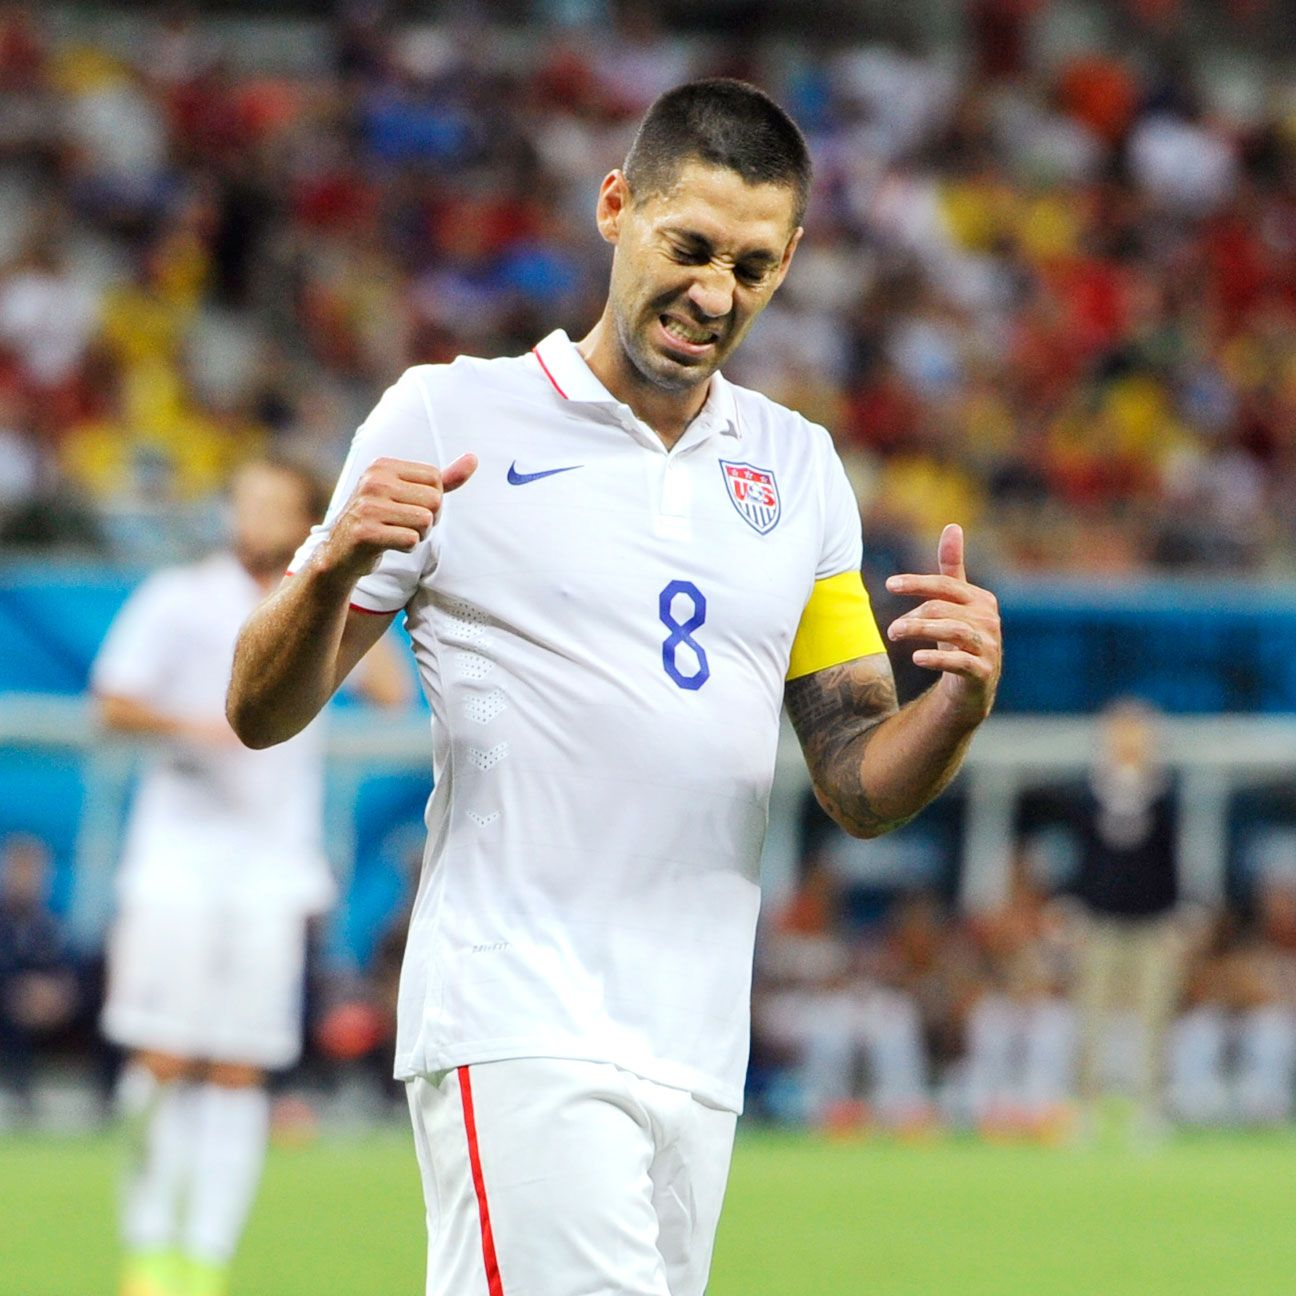 Clint Dempsey showed superhuman resolve vs. Portugal but it still wasn't enough.